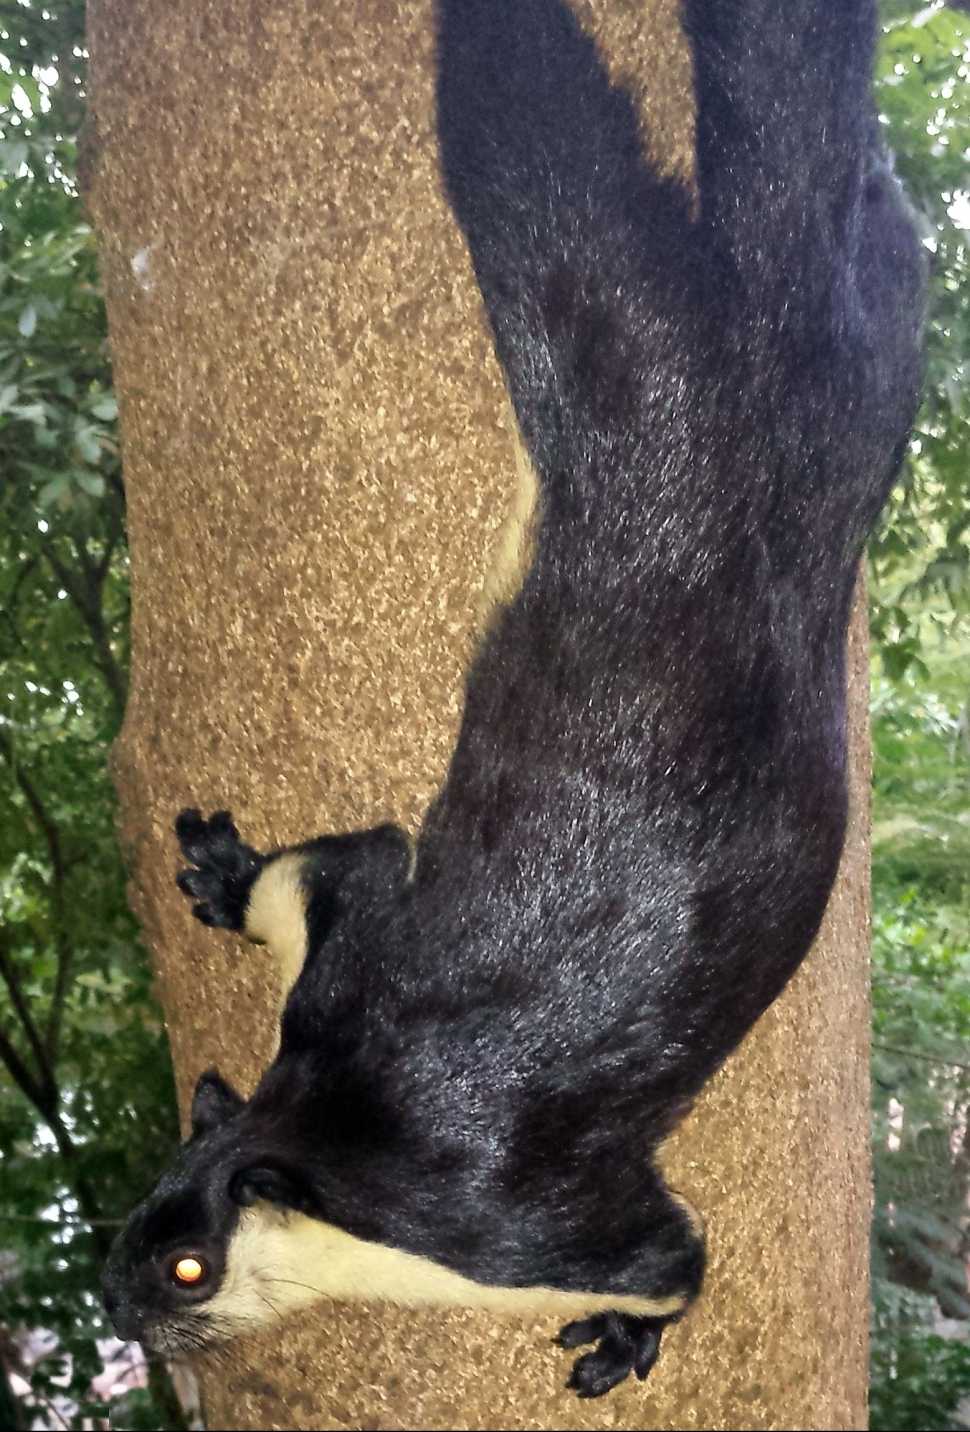 World's largest squirrel